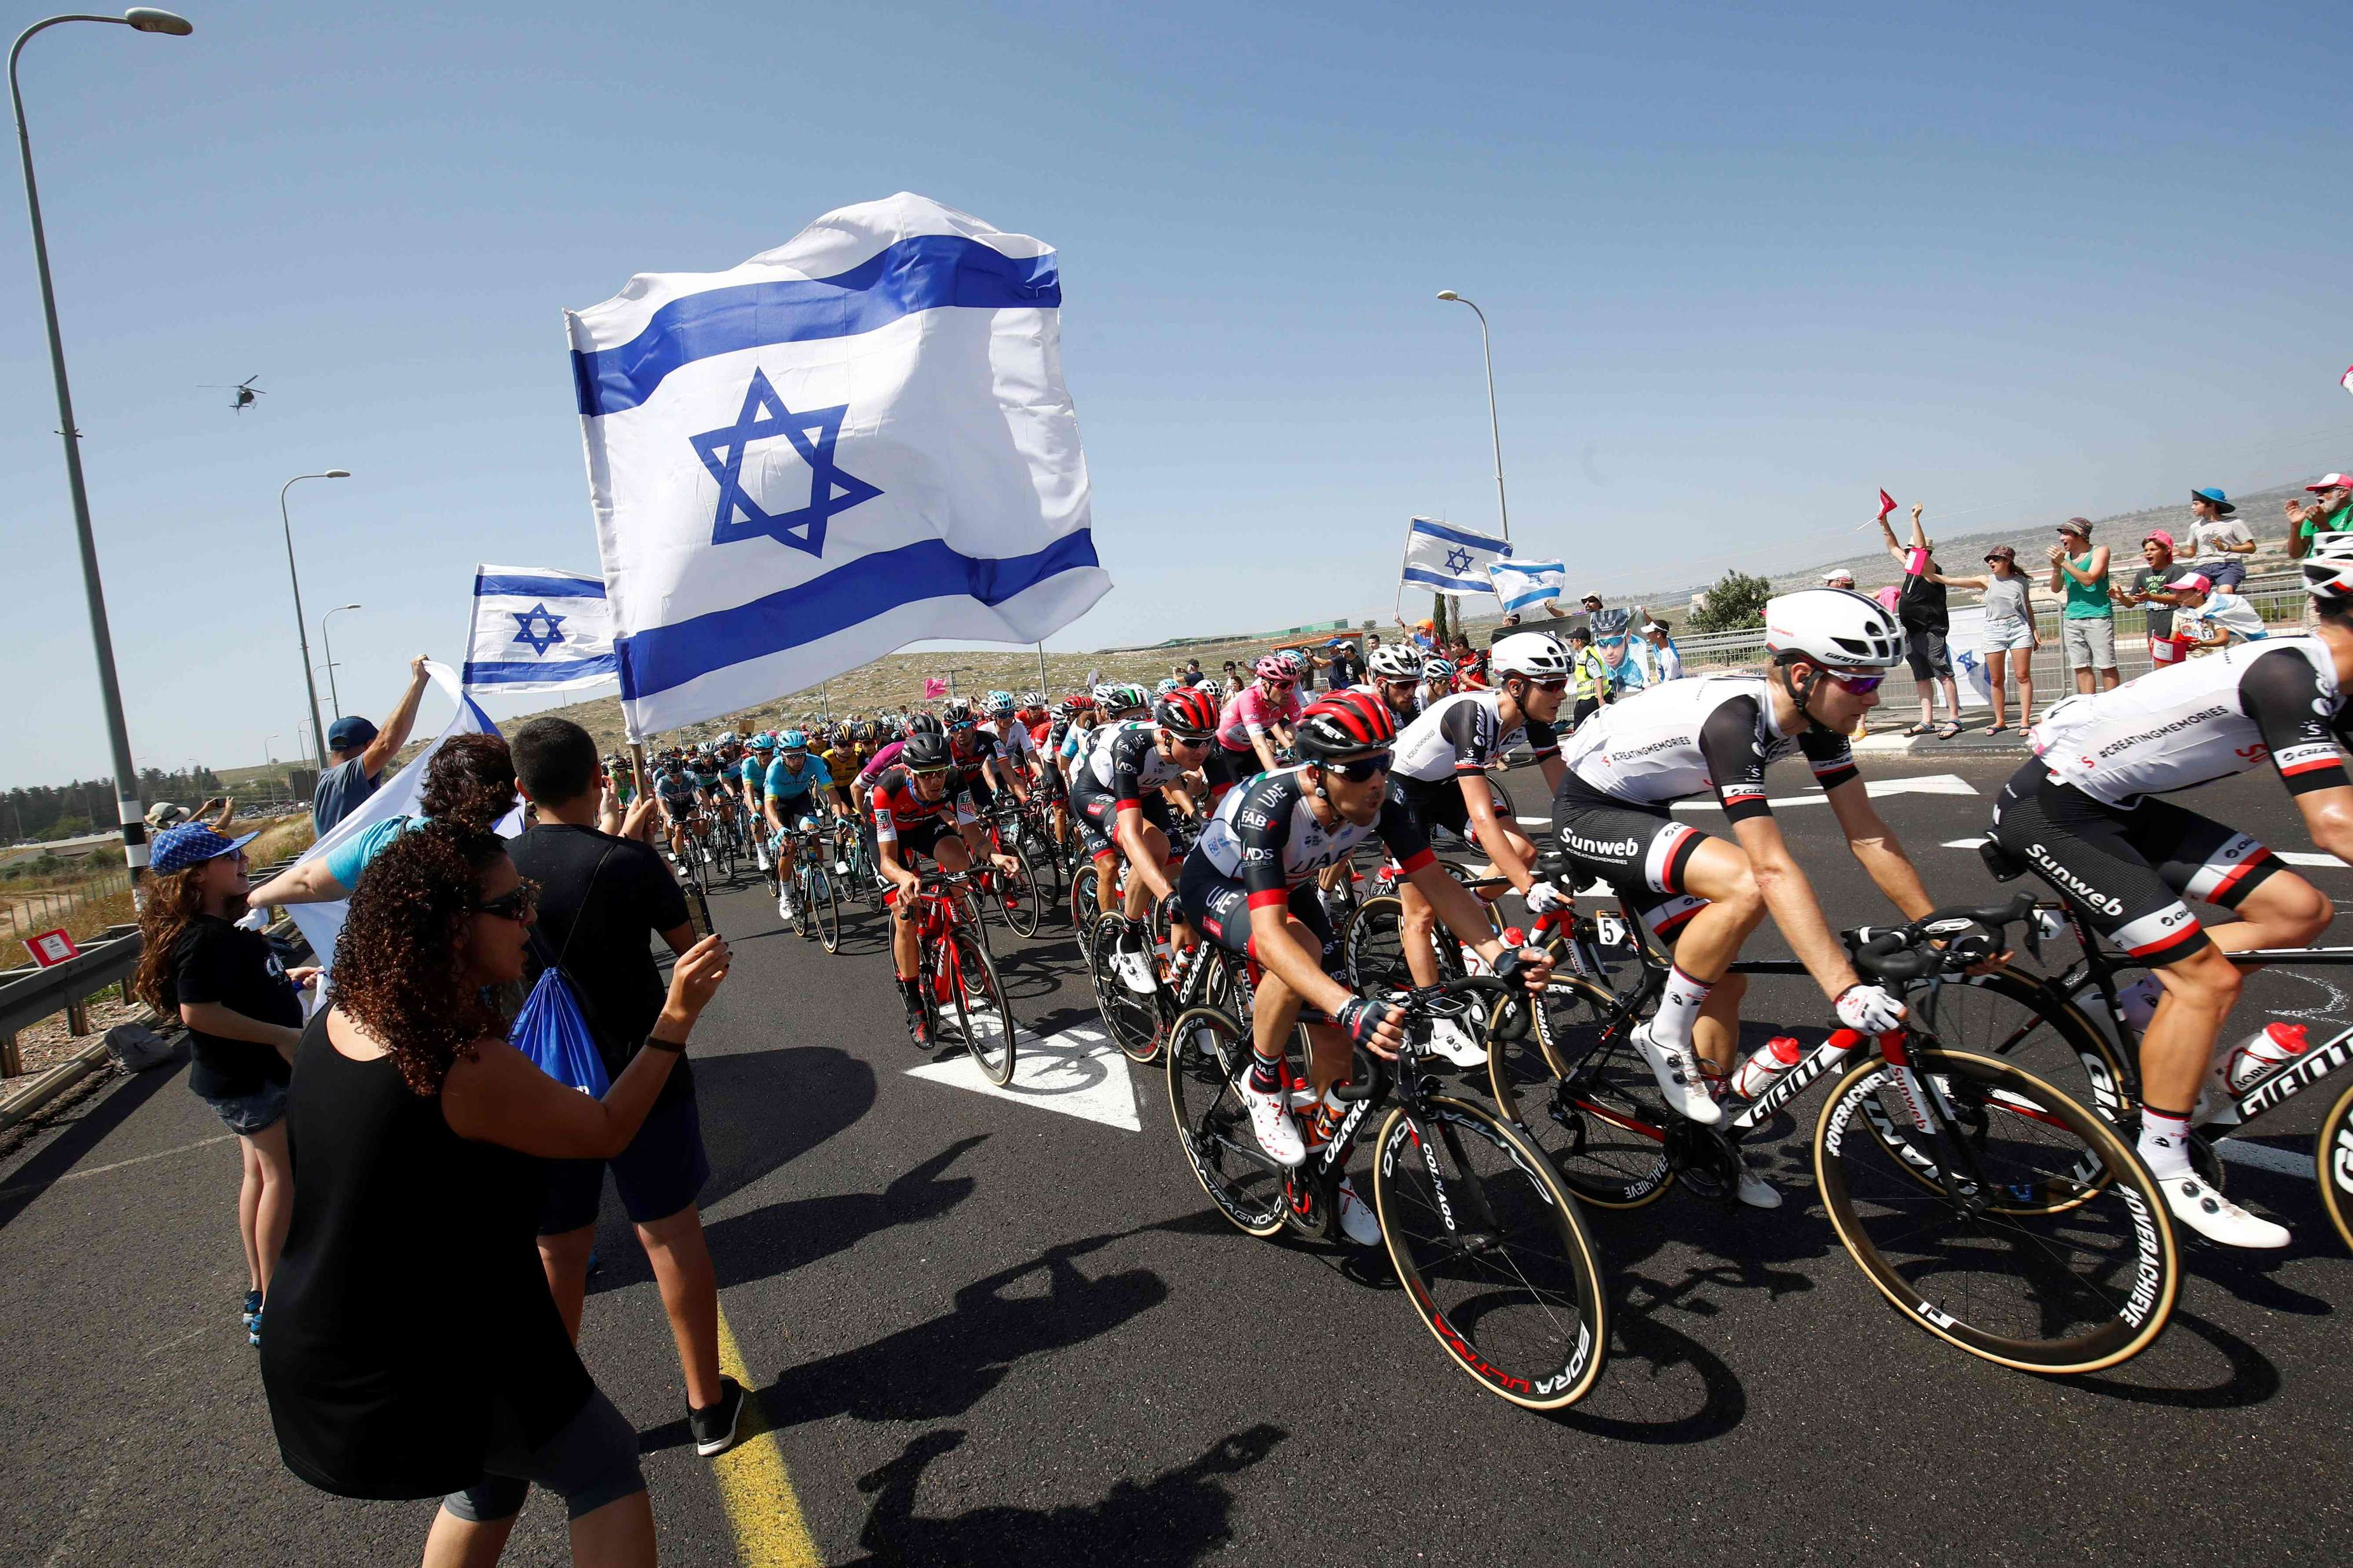 Israeli fans cheer for the riders during the second stage of the 101st Tour of Italy, between Haifa and Tel Aviv, on May 5. (AFP)